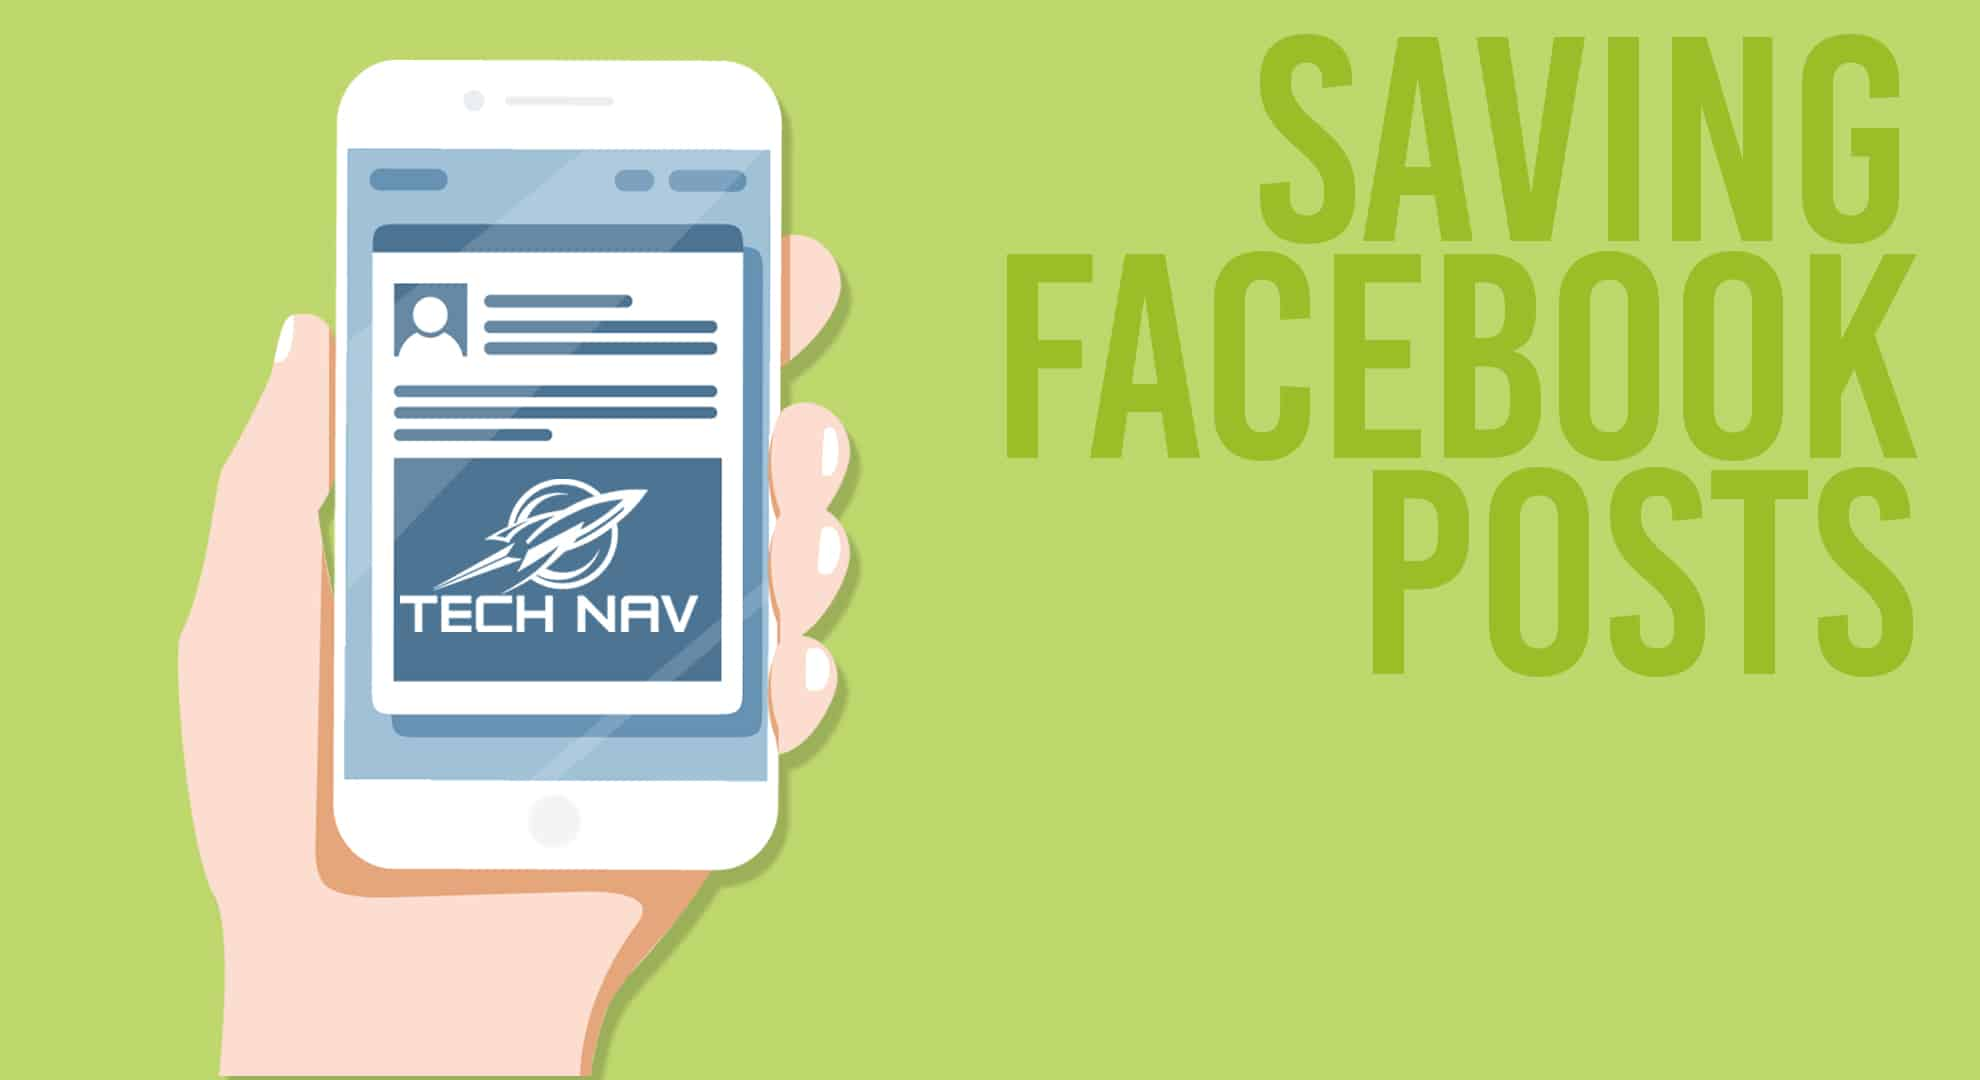 Saving FB post - blog